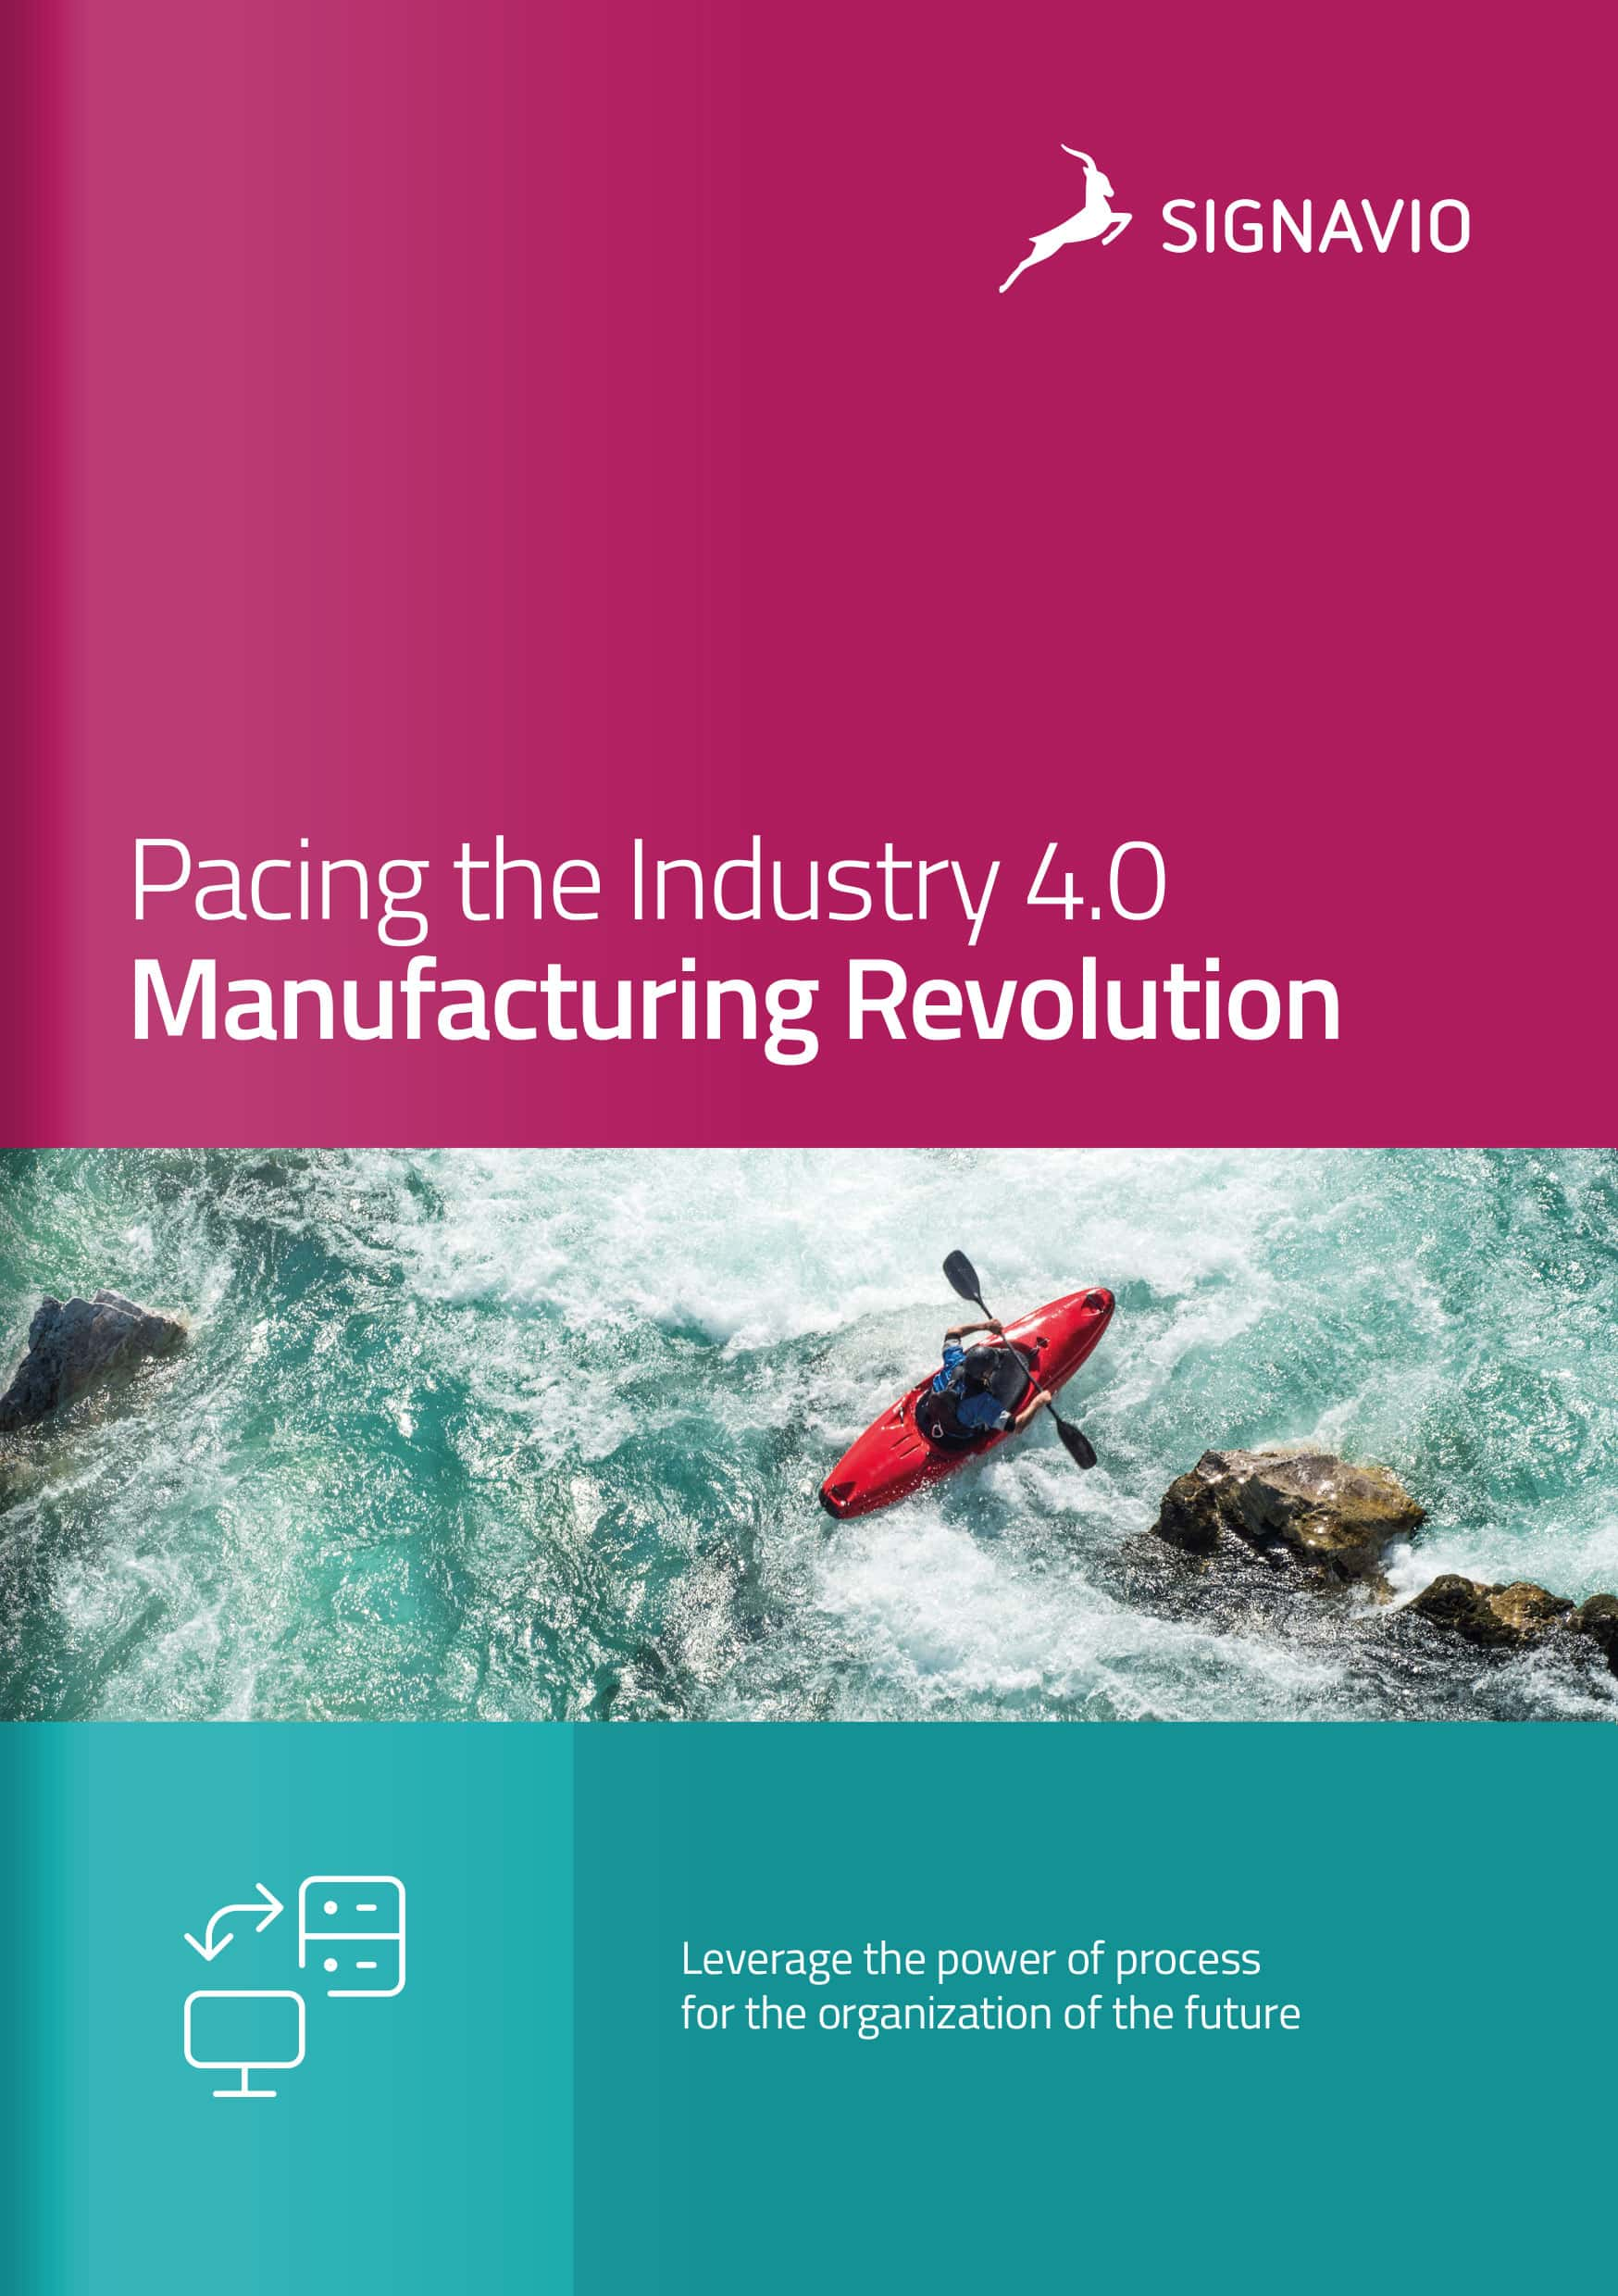 Industry 4.0 success brochure